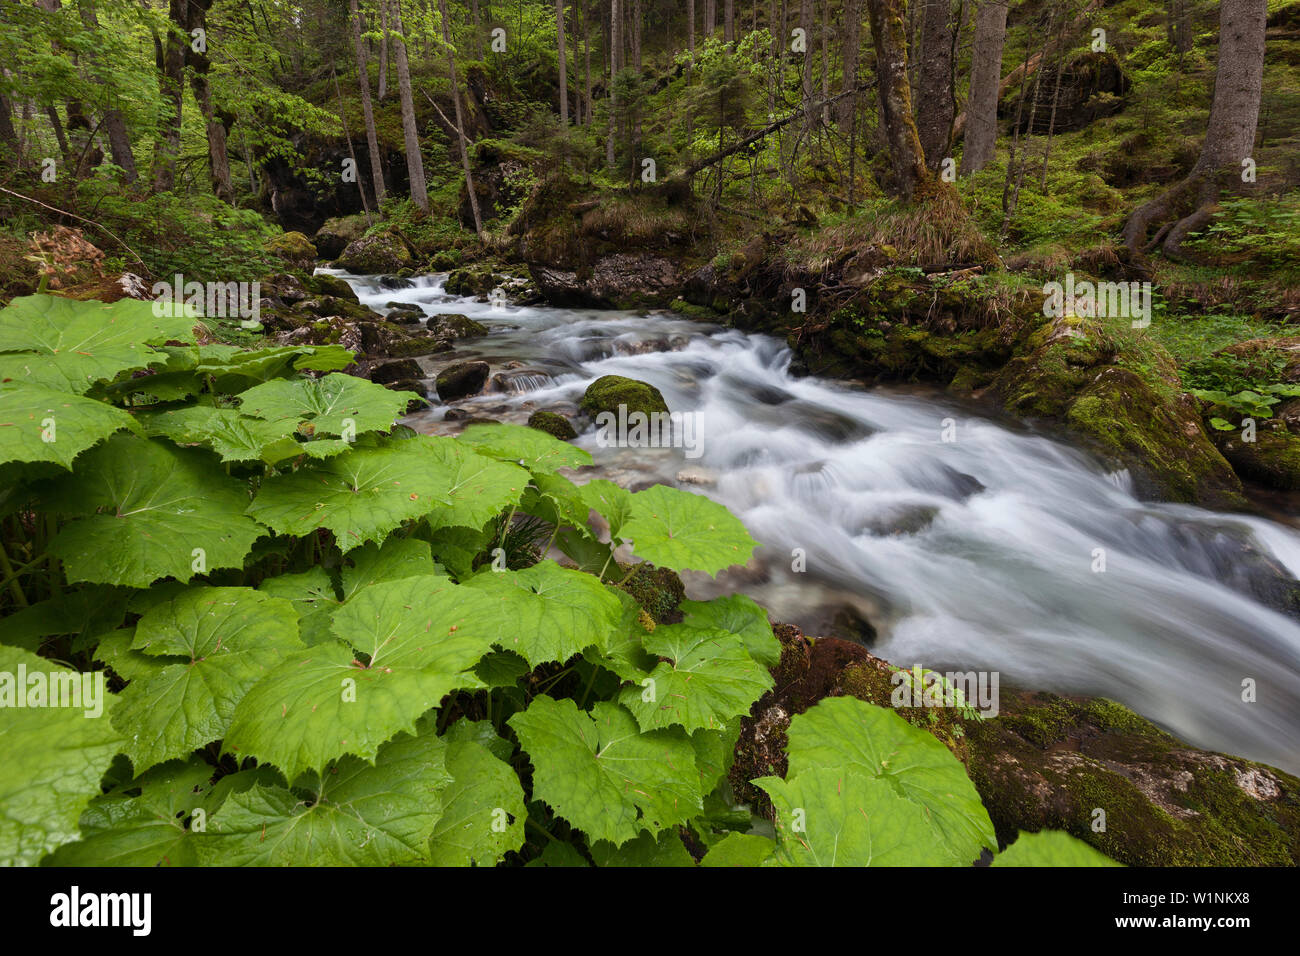 Mountain creek in Hartelsgraben woods in Spring with plants in the foreground, Gesaeuse National Park, Ennstal Alps, Styria, Austria - Stock Image